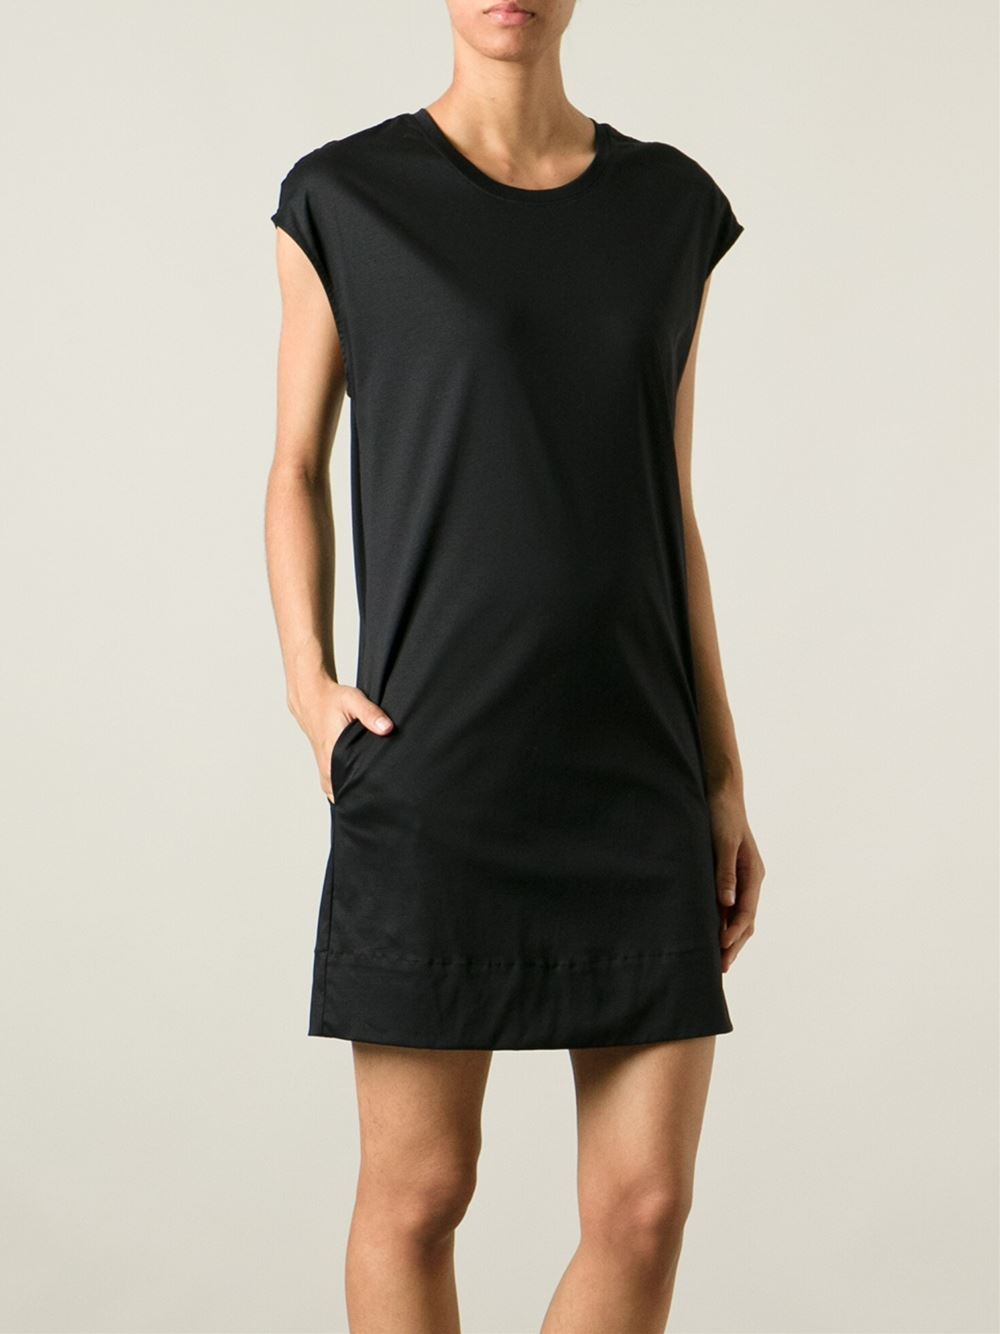 Black t shirt jersey dress - Gallery Previously Sold At Farfetch Women S Jersey Dresses Women S T Shirt Dresses